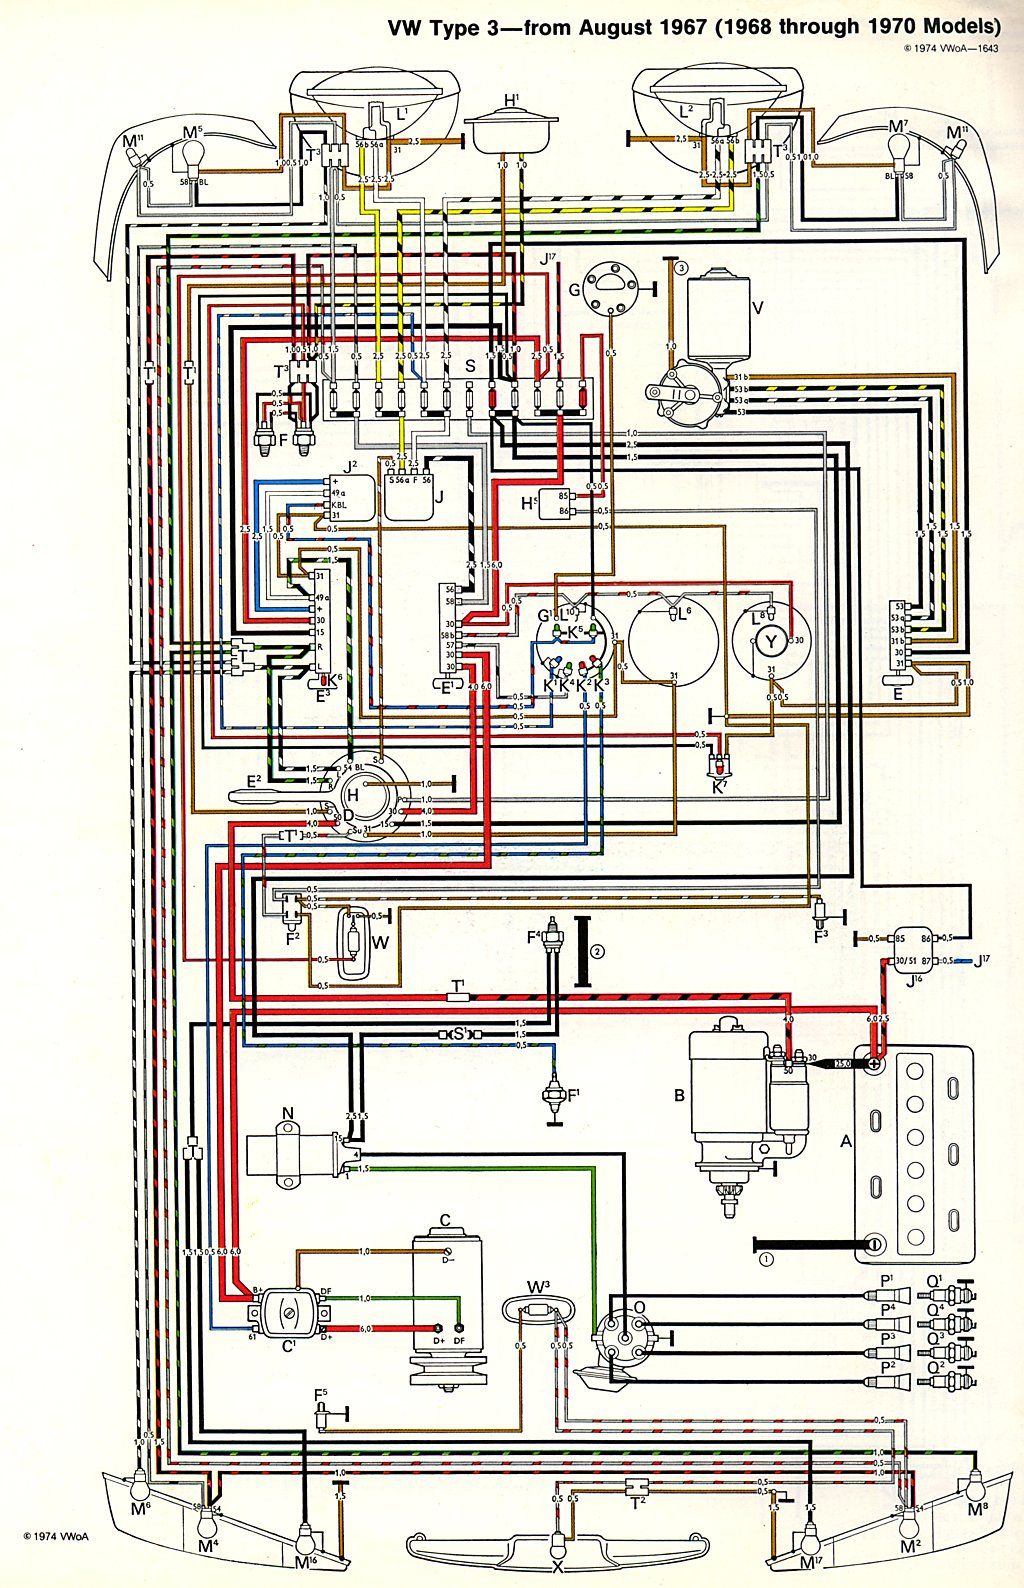 type3_6870 vw thing wiring diagram 1974 beetle heater diagram \u2022 wiring 1971 vw bus wiring diagram at bakdesigns.co